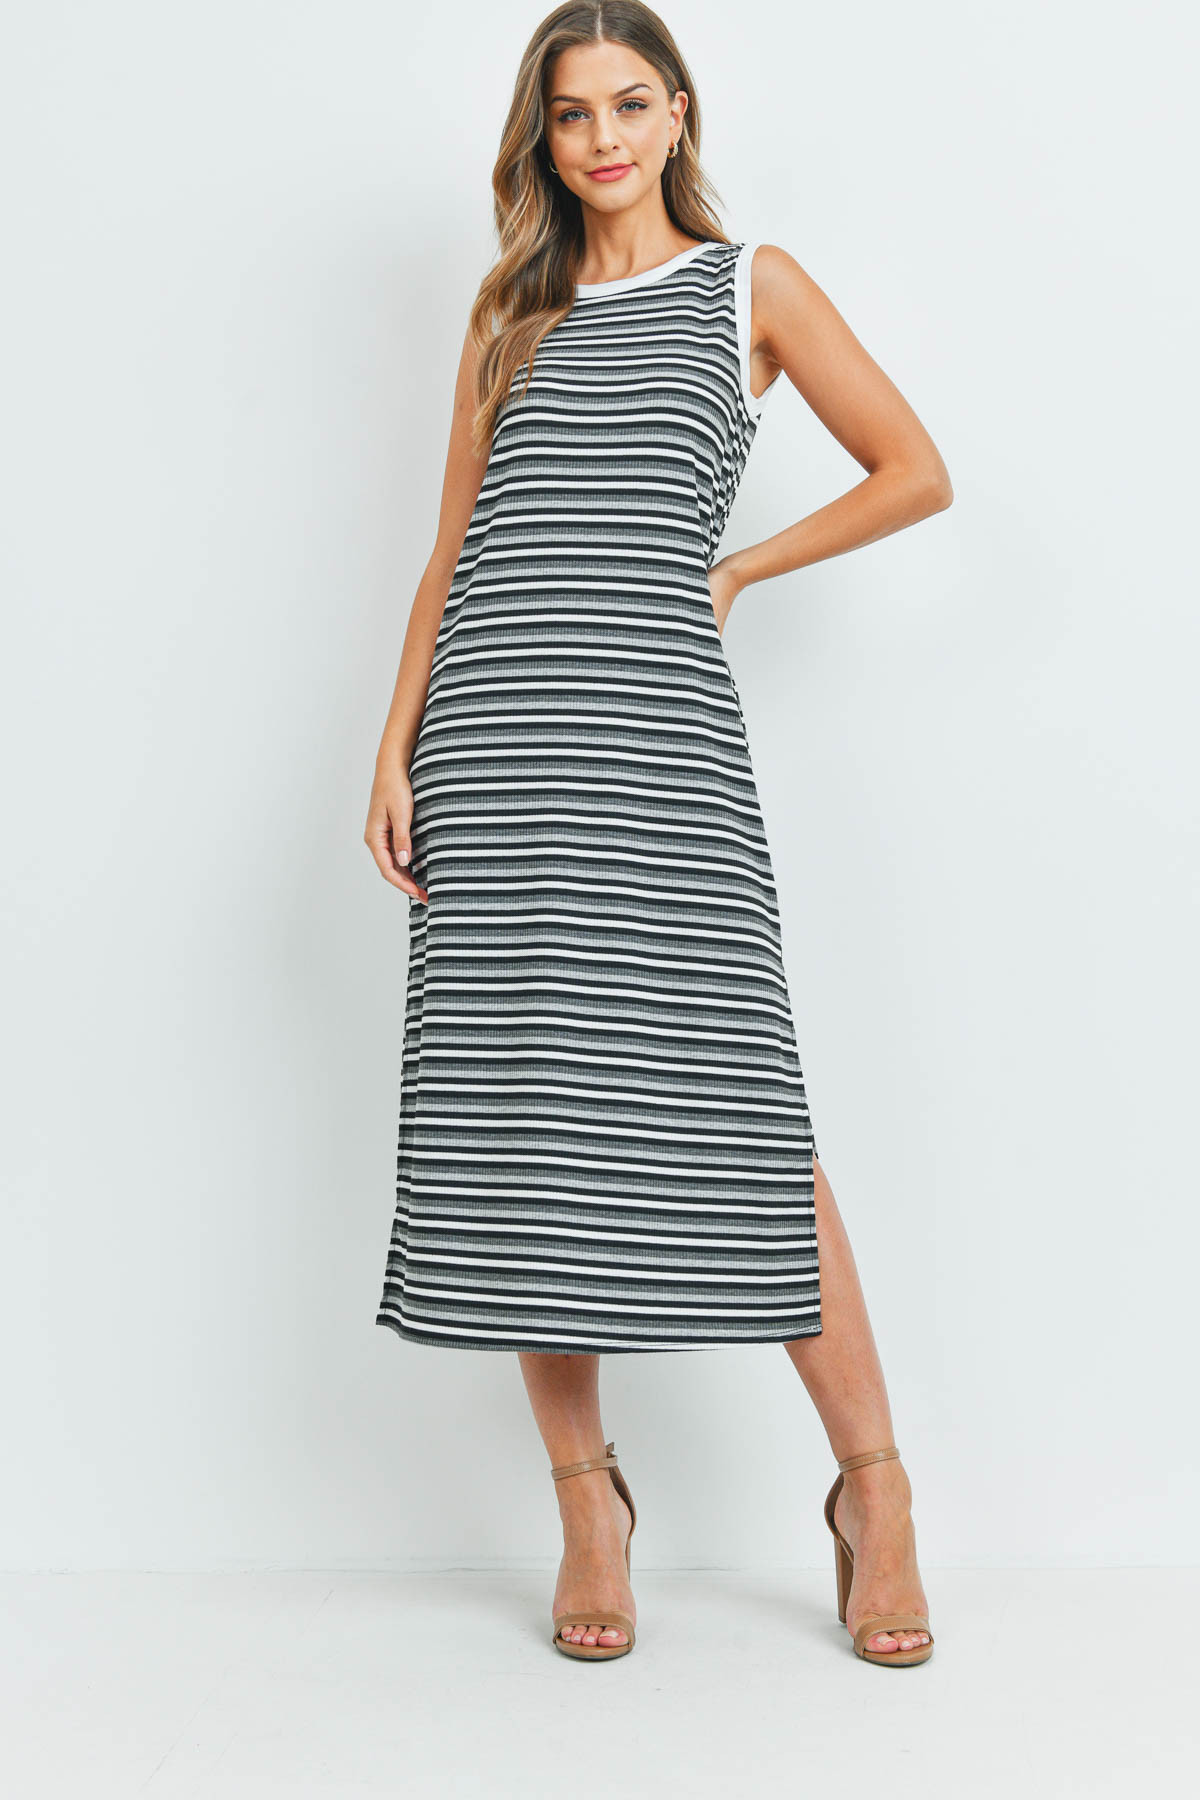 S11-19-2-PPD1106-BKCHLHG - RIB MULTI-COLOR STRIPES MAXI DRESS WITH SIDE SLIT- BLACK/CHARCOAL/HEATHER GREY-IVORY 1-2-2-2